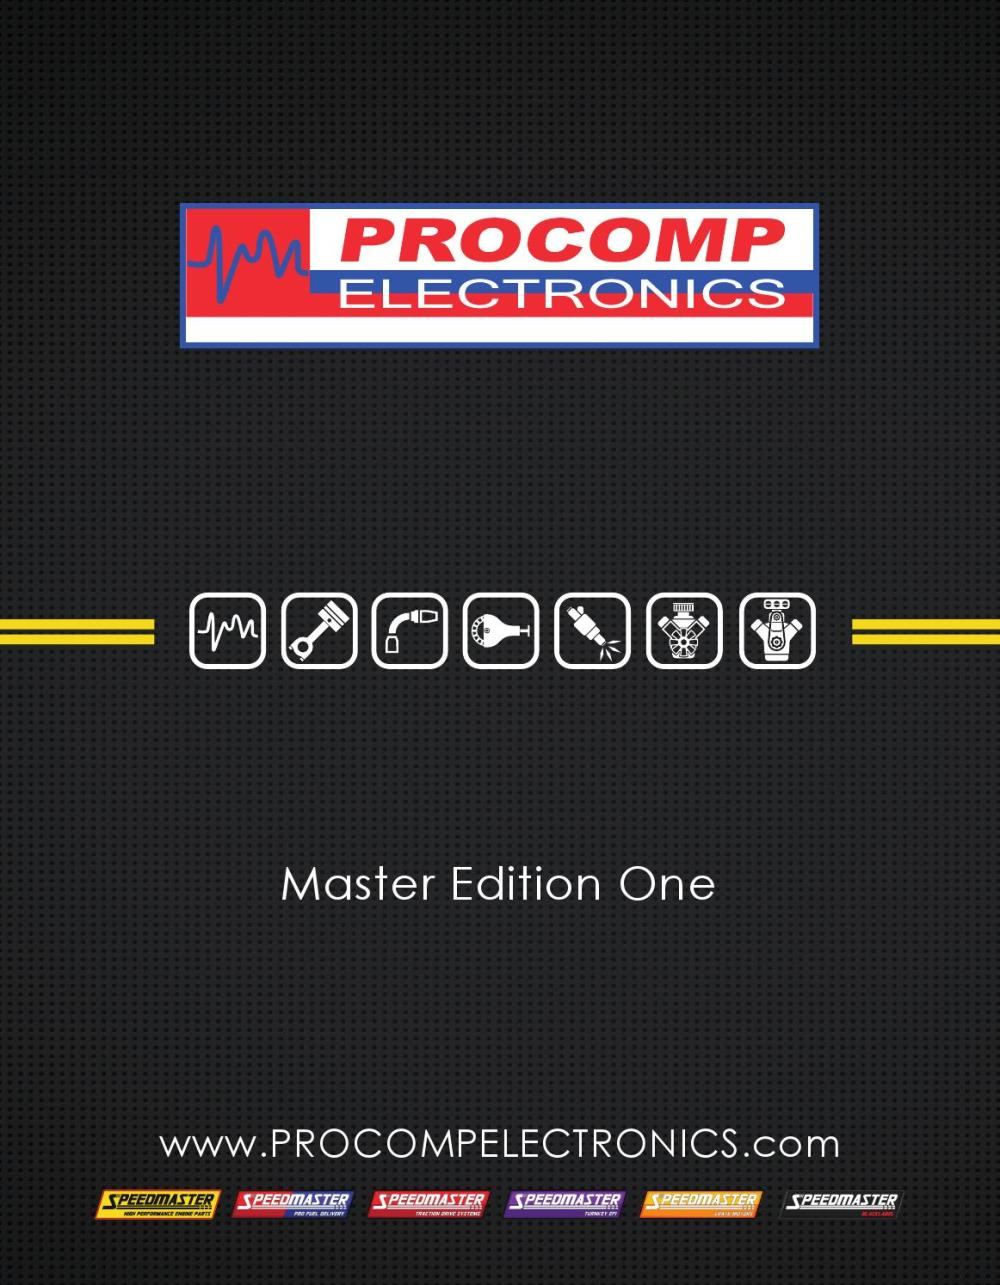 medium resolution of procomp electronics catalog master edition one by studio eightysix issuu